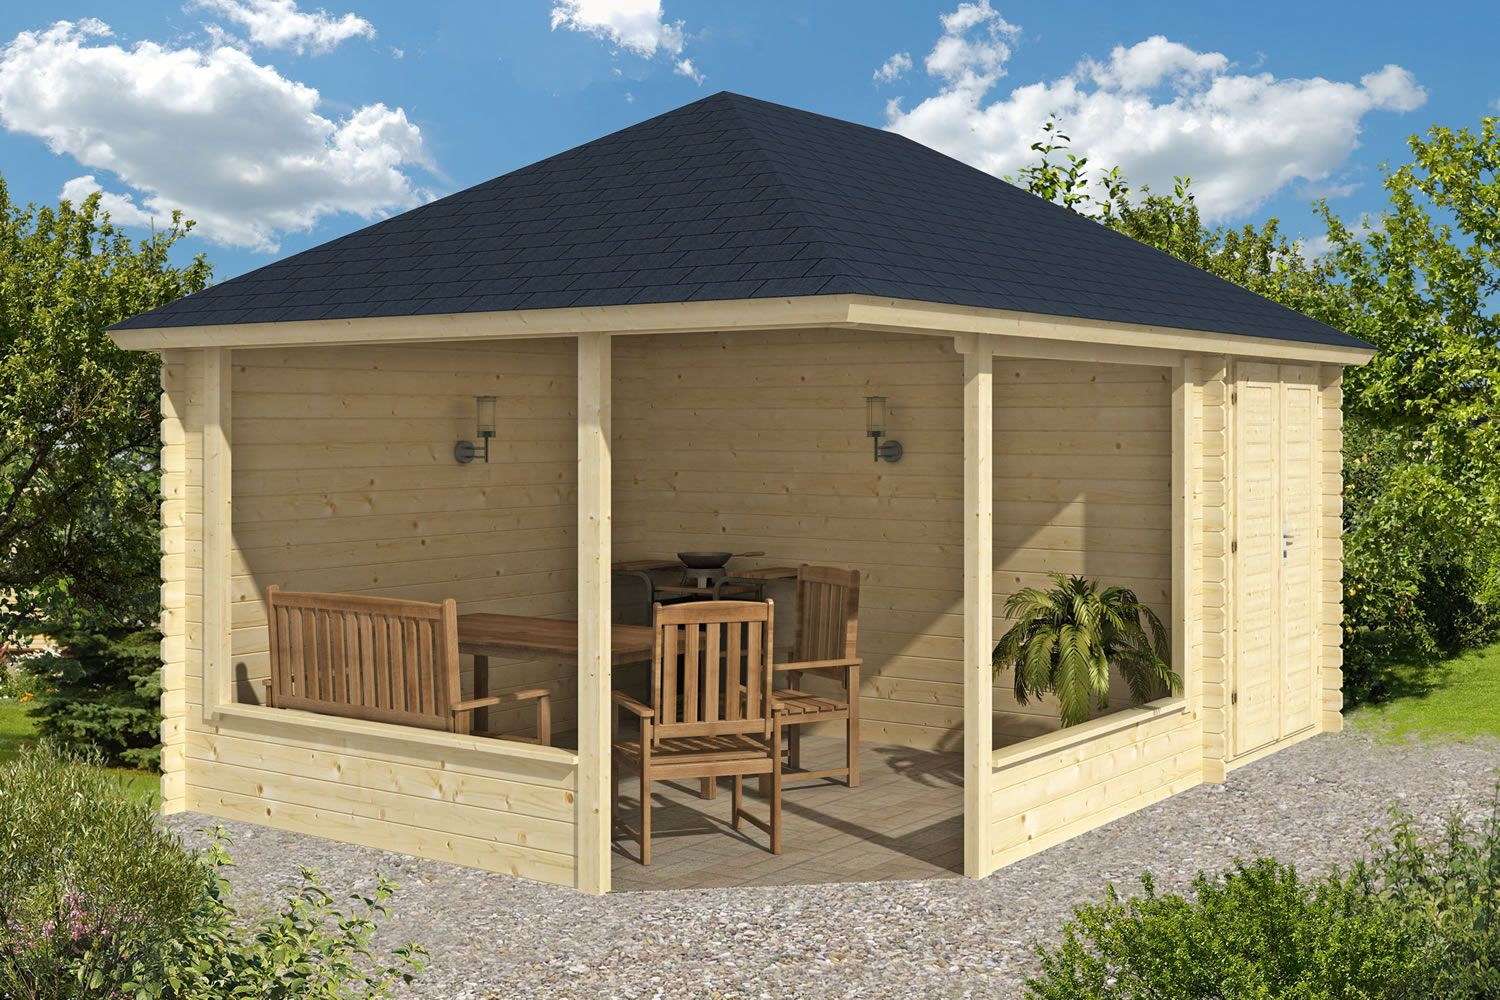 Download Free Gazebo Plans Another Plan And Find The Best Plan That You Like Wooden Garden Gazebo Gazebo Garden Gazebo